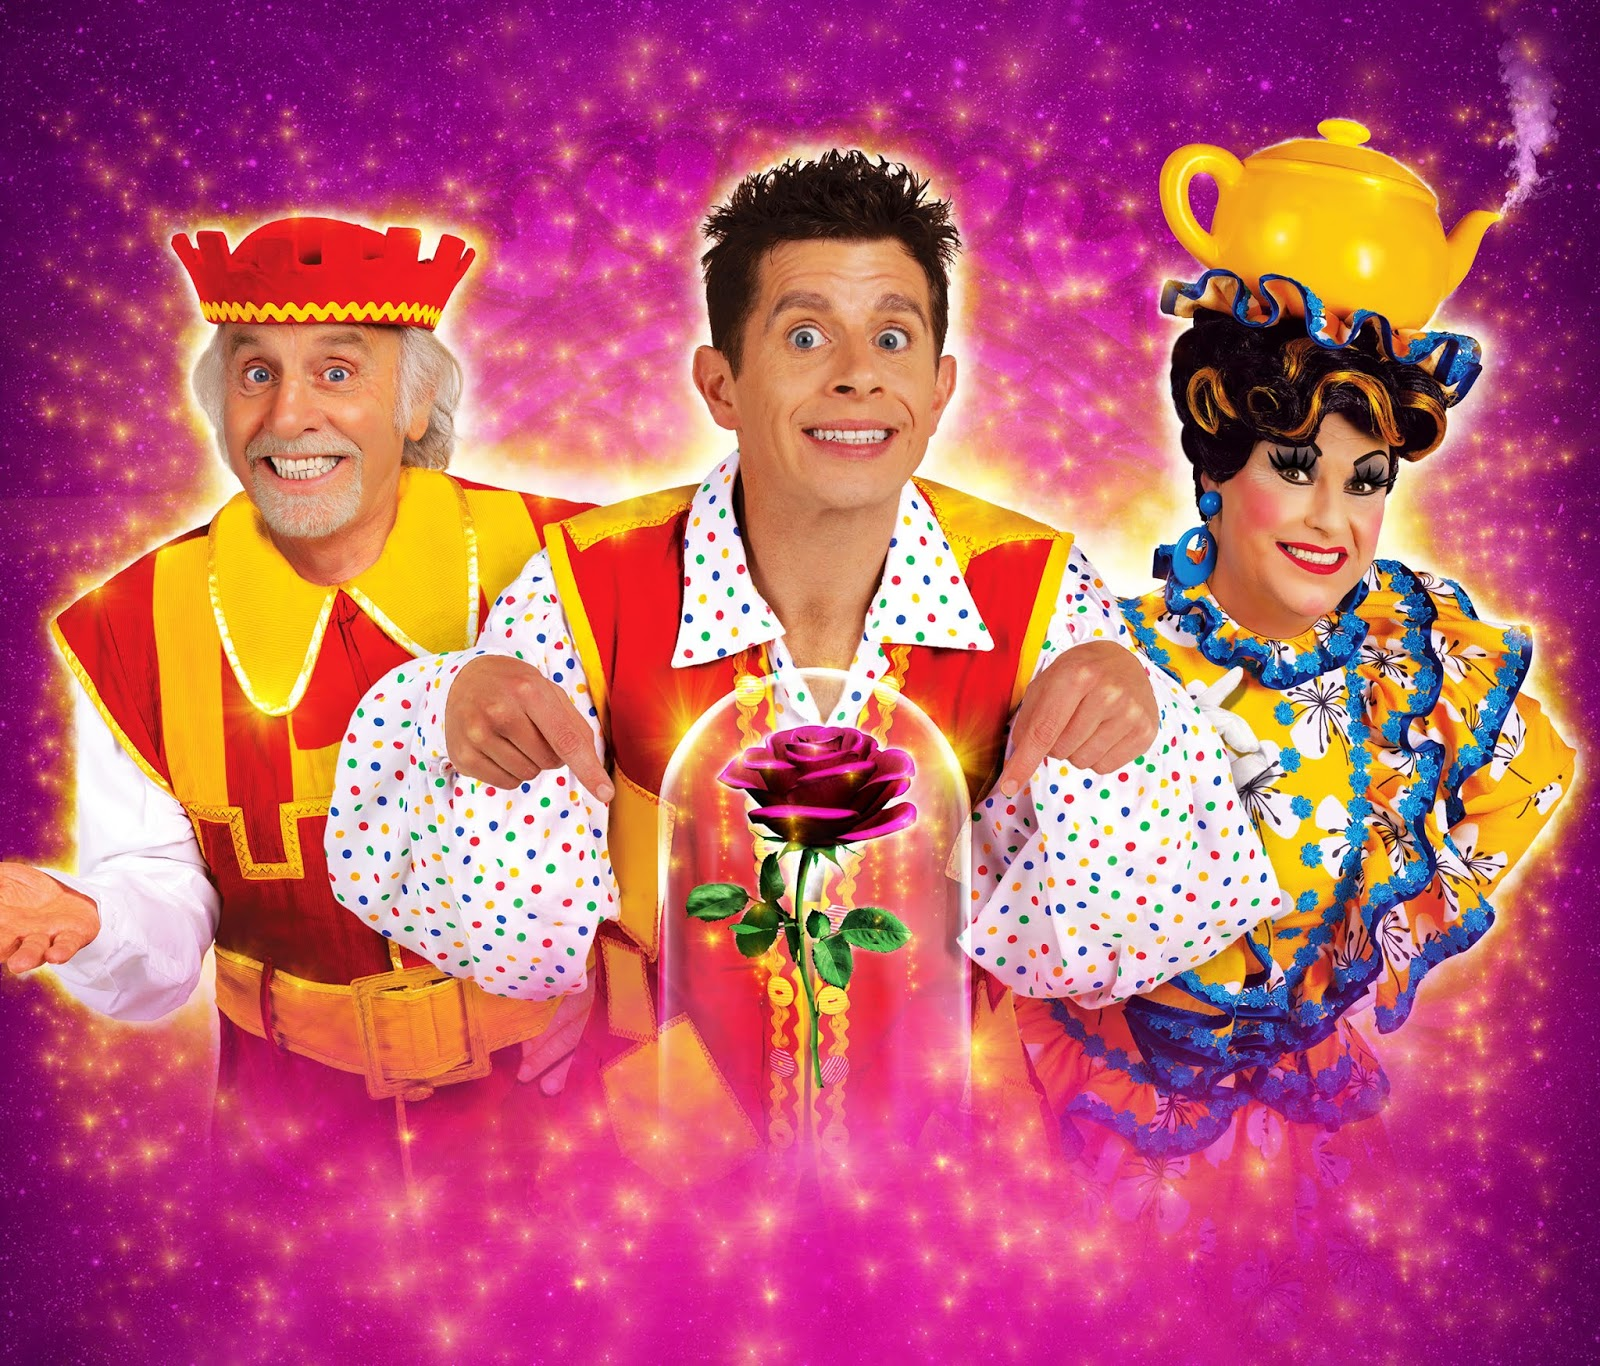 Newcastle Theatre Royal Pantomime 2019 - Beauty and the Beast Review